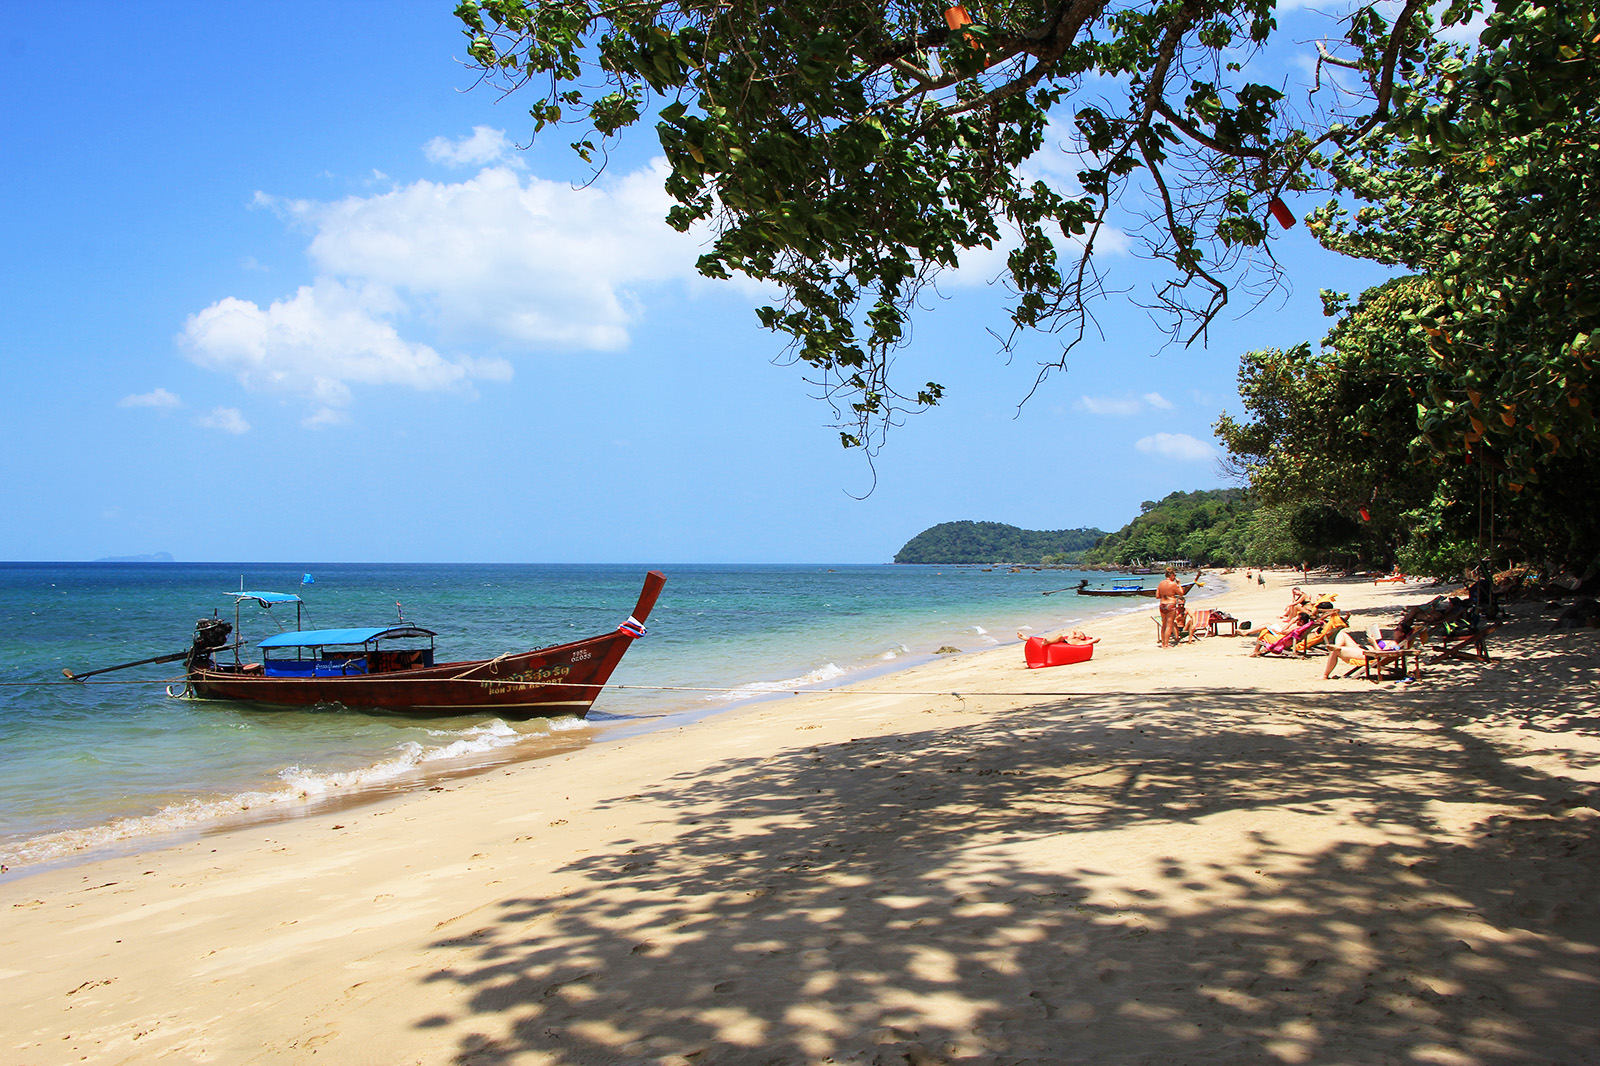 Koh Jum: Laid-Back Island off the Krabi Coast